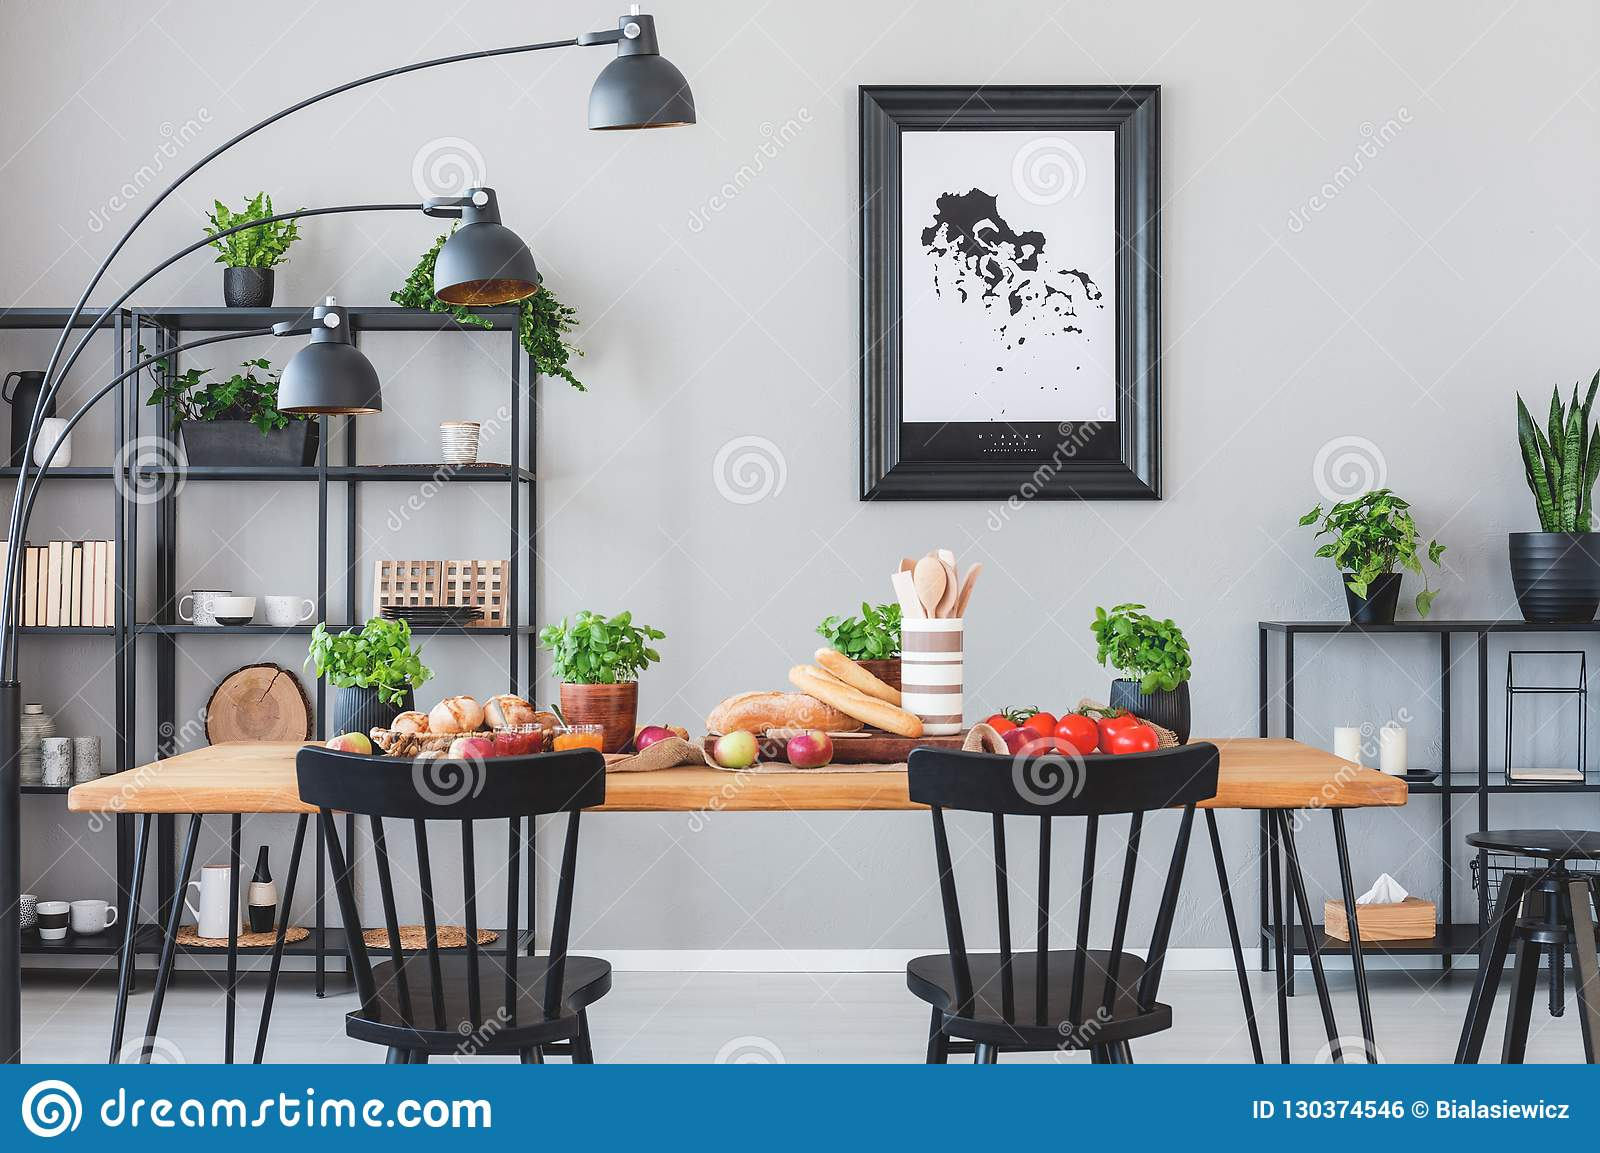 Lamp above black chairs and wooden table with food in grey dining room interior with poster